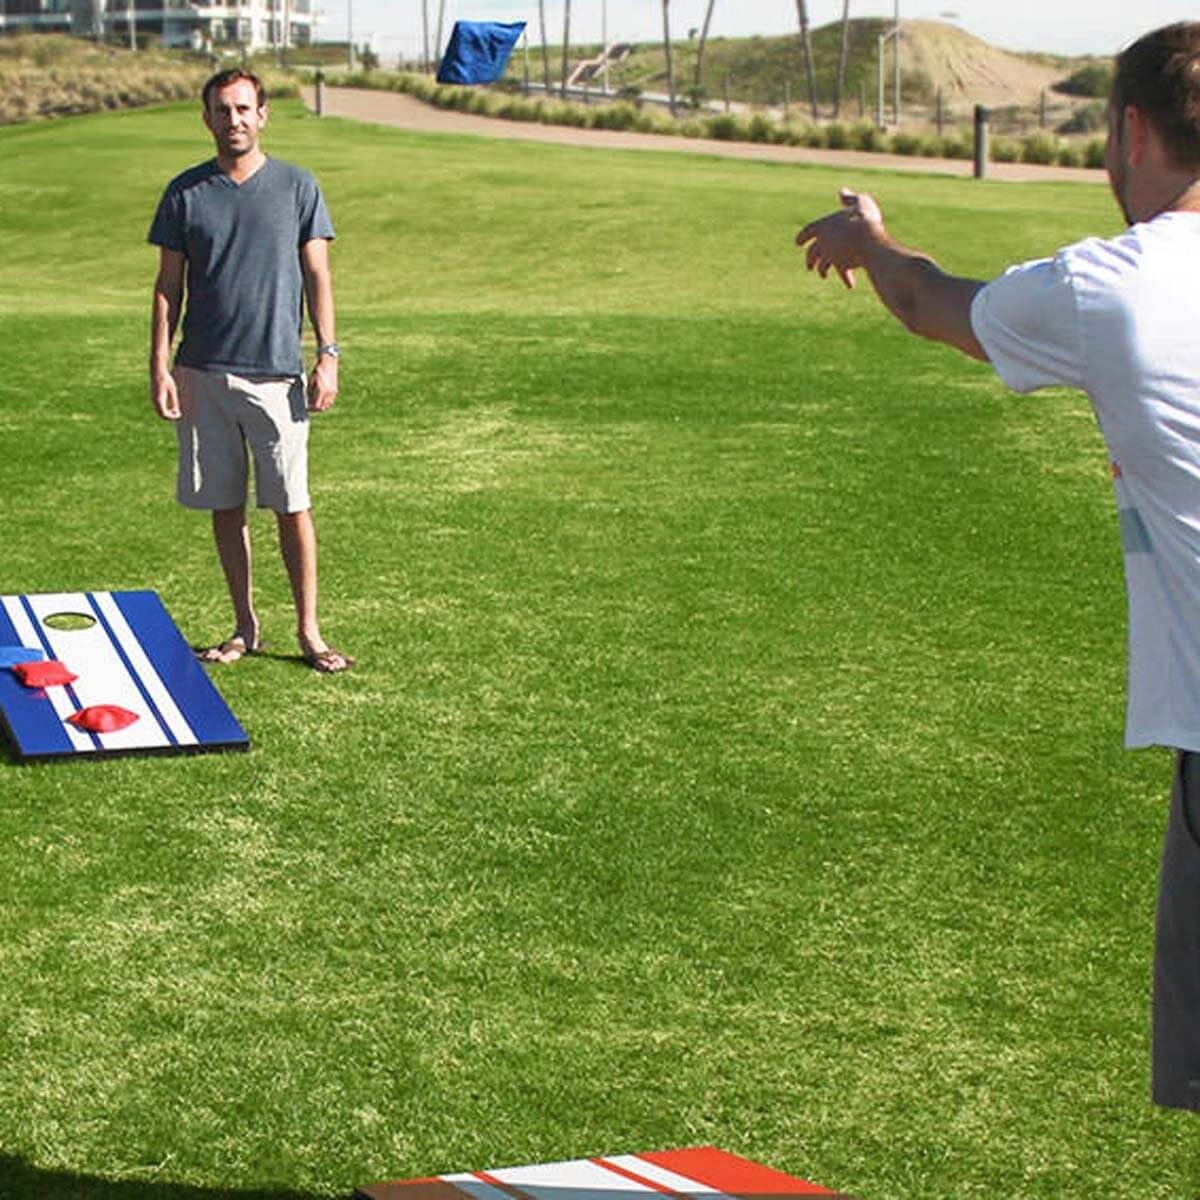 Game on! Build your own corn hole boards